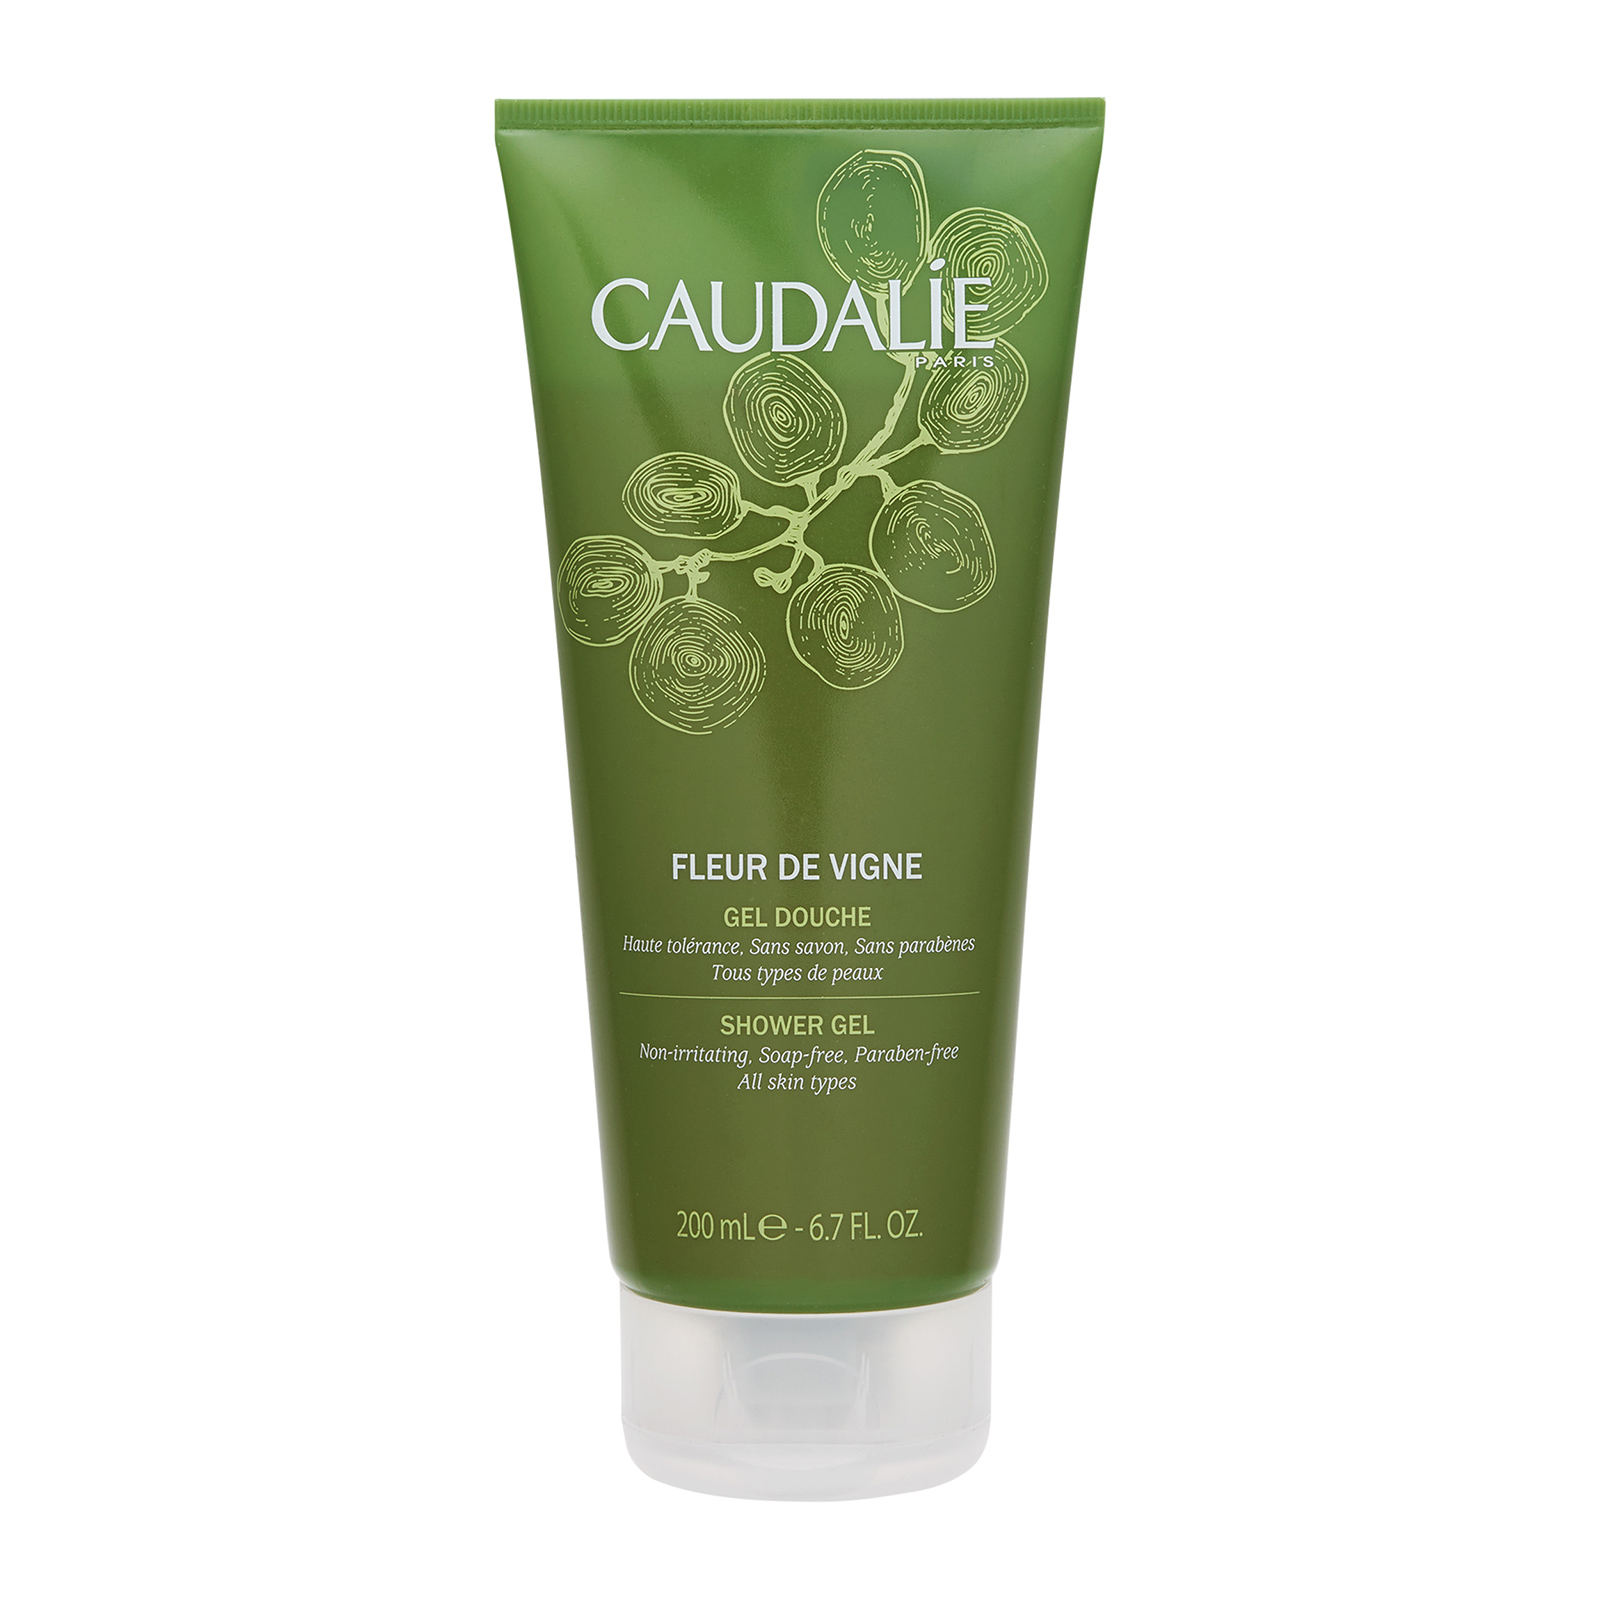 CAUDALIE  Fleur de Vigne Shower Gel 6.7oz, 200ml